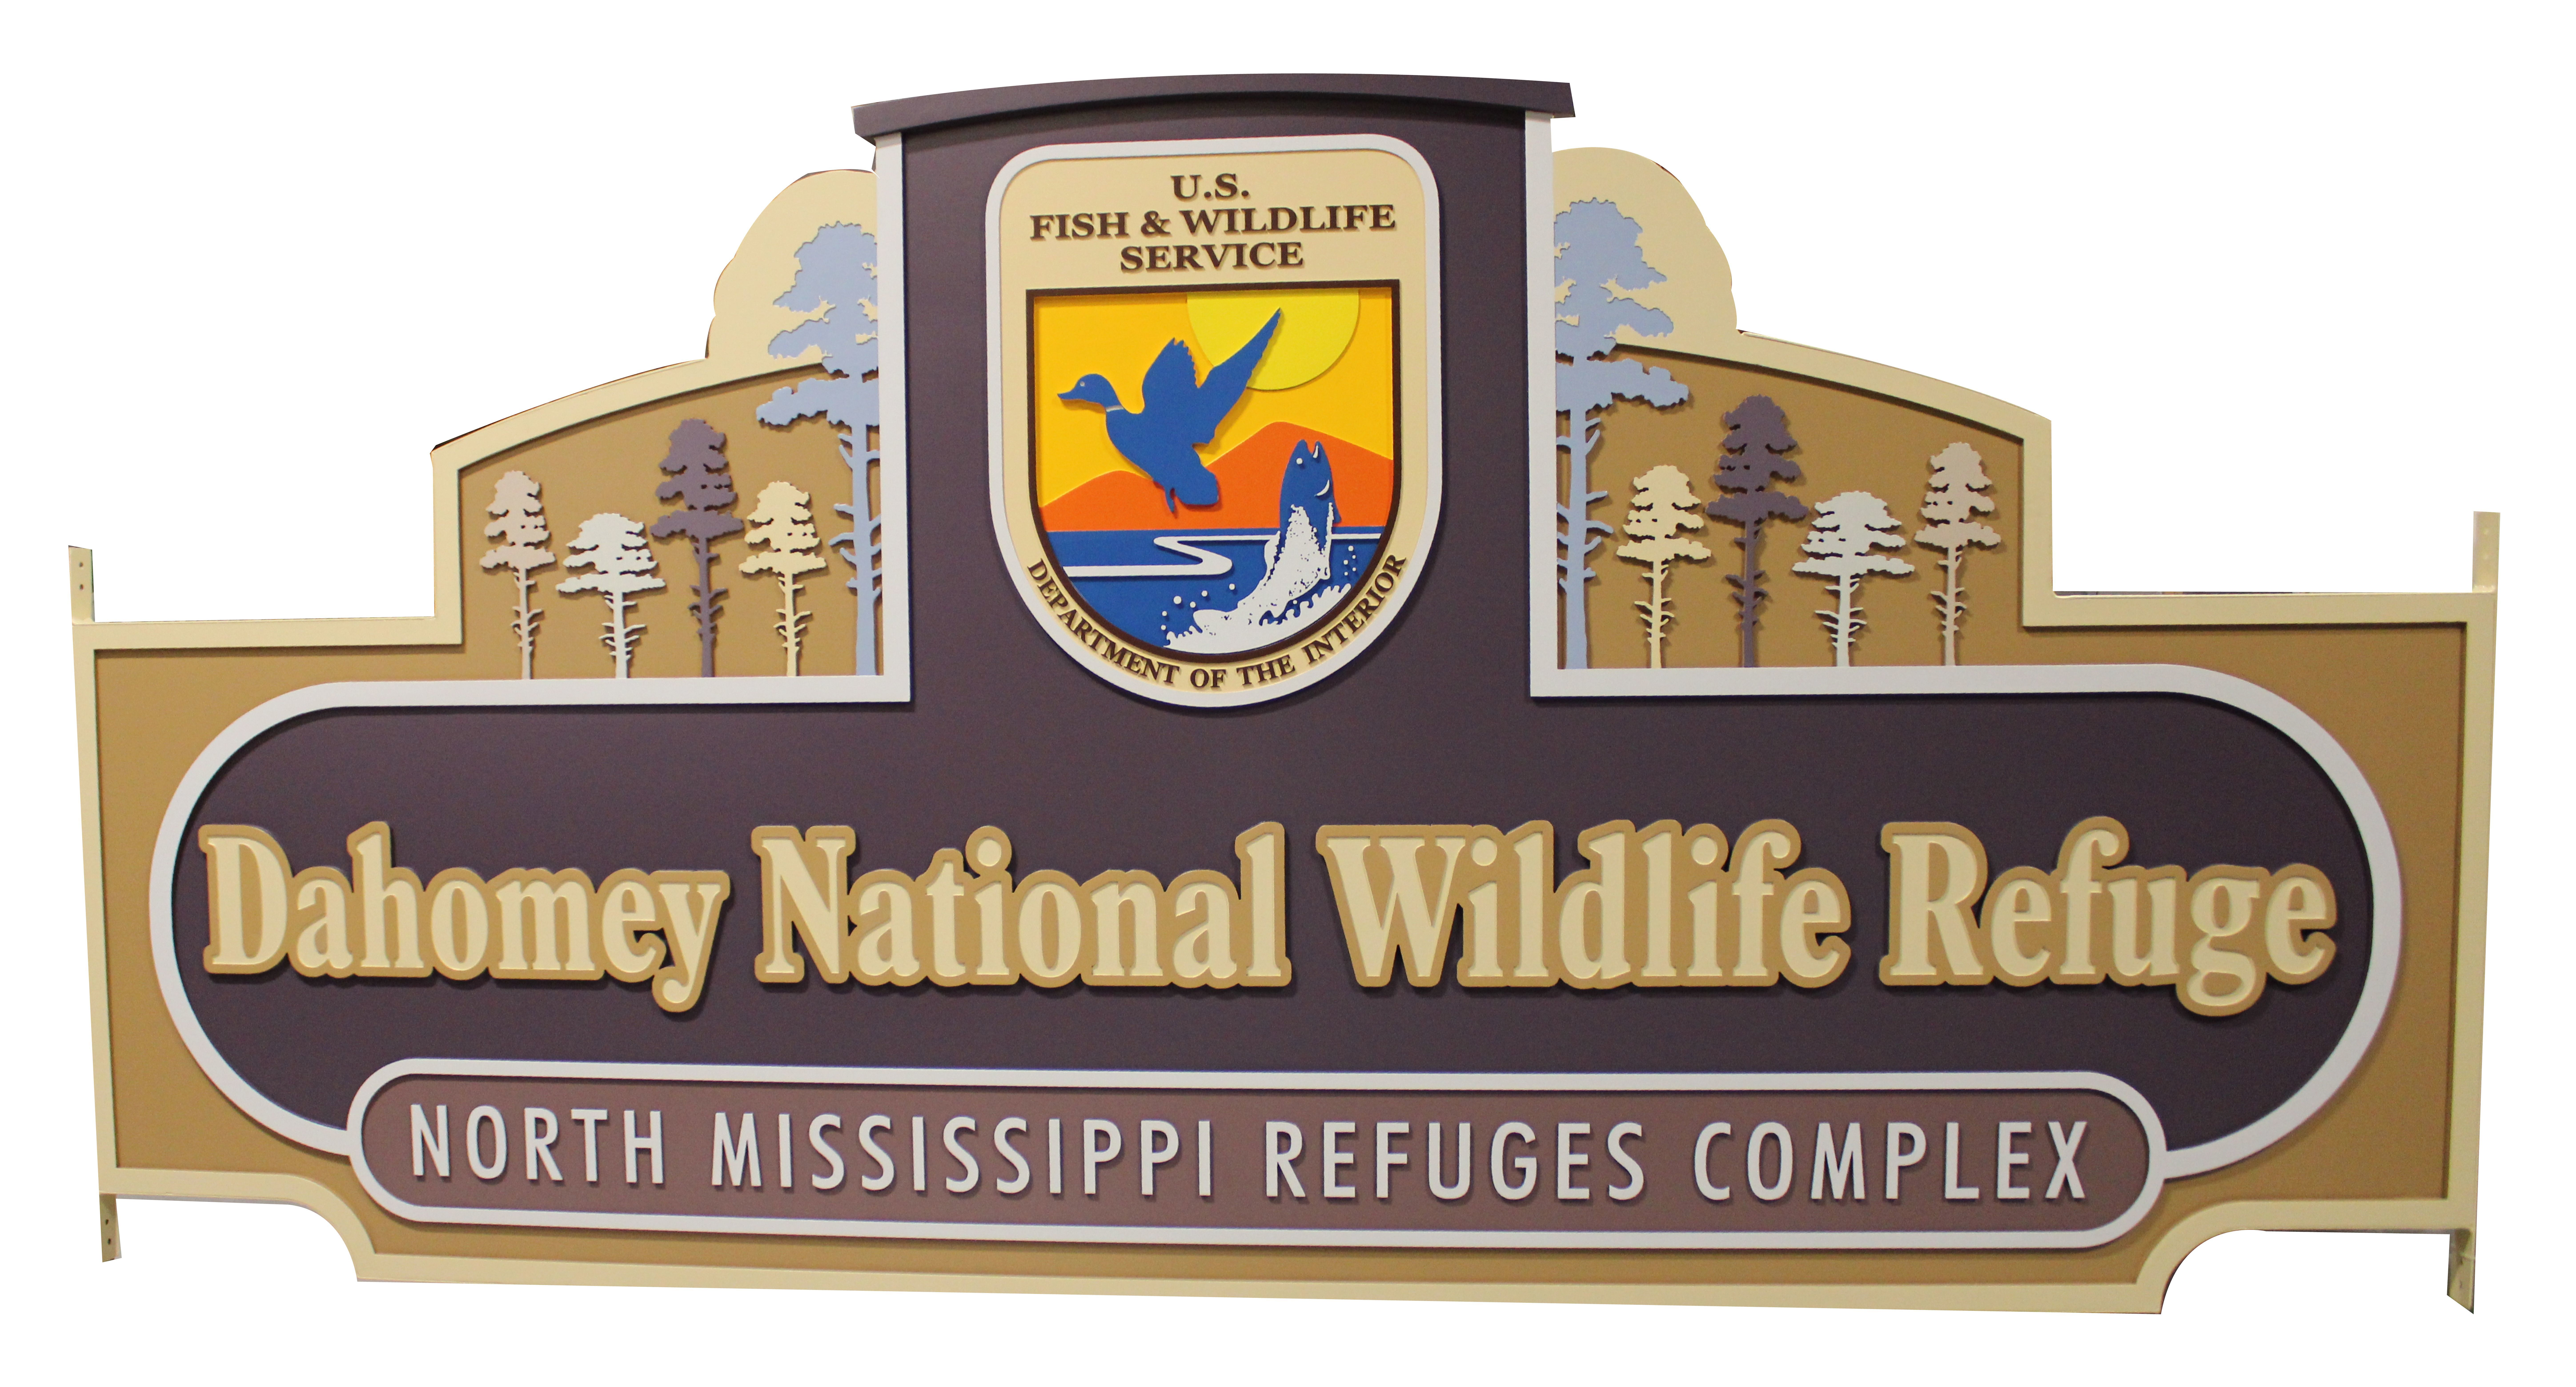 G16003 - Carved 2.5-DMulti-levelSign for the Dahomey National Wildlife Refuge, with the US Fish & Wildlife Service Logo and Grove of Trees as Artwork